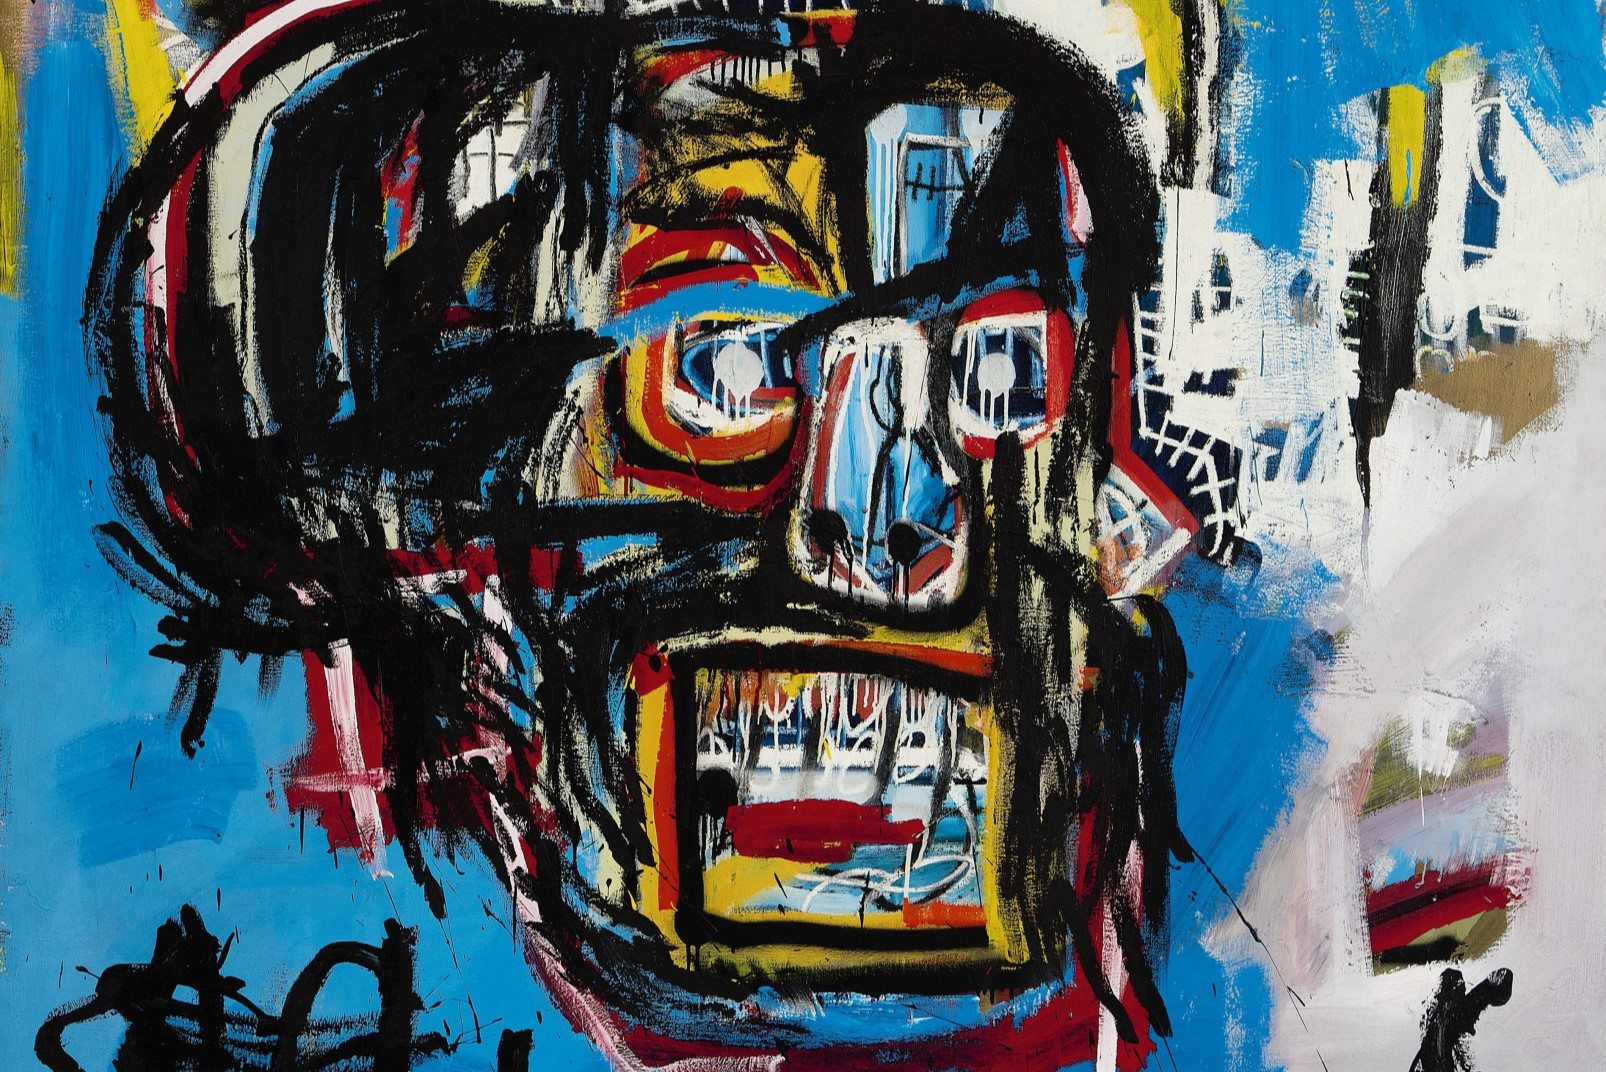 Jean-Michel Basquiat, Untitled, 1982, Acrylic spray